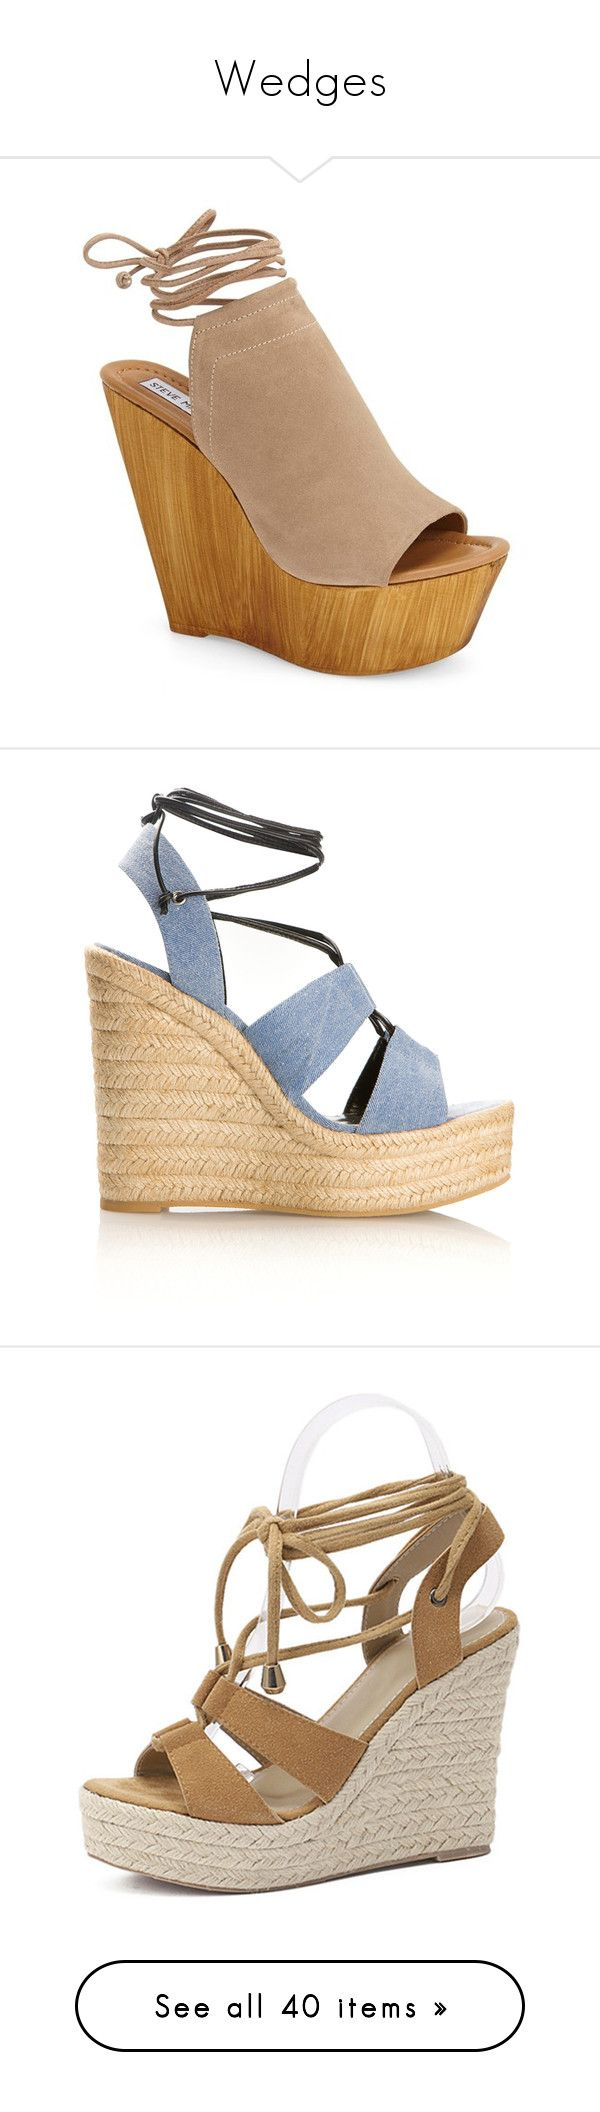 """Wedges"" by samantharaet ❤ liked on Polyvore featuring shoes, sandals, heels, wedges, taupe suede, high heel wedge sandals, wedge heel sandals, strappy high heel sandals, steve madden sandals and heeled sandals"